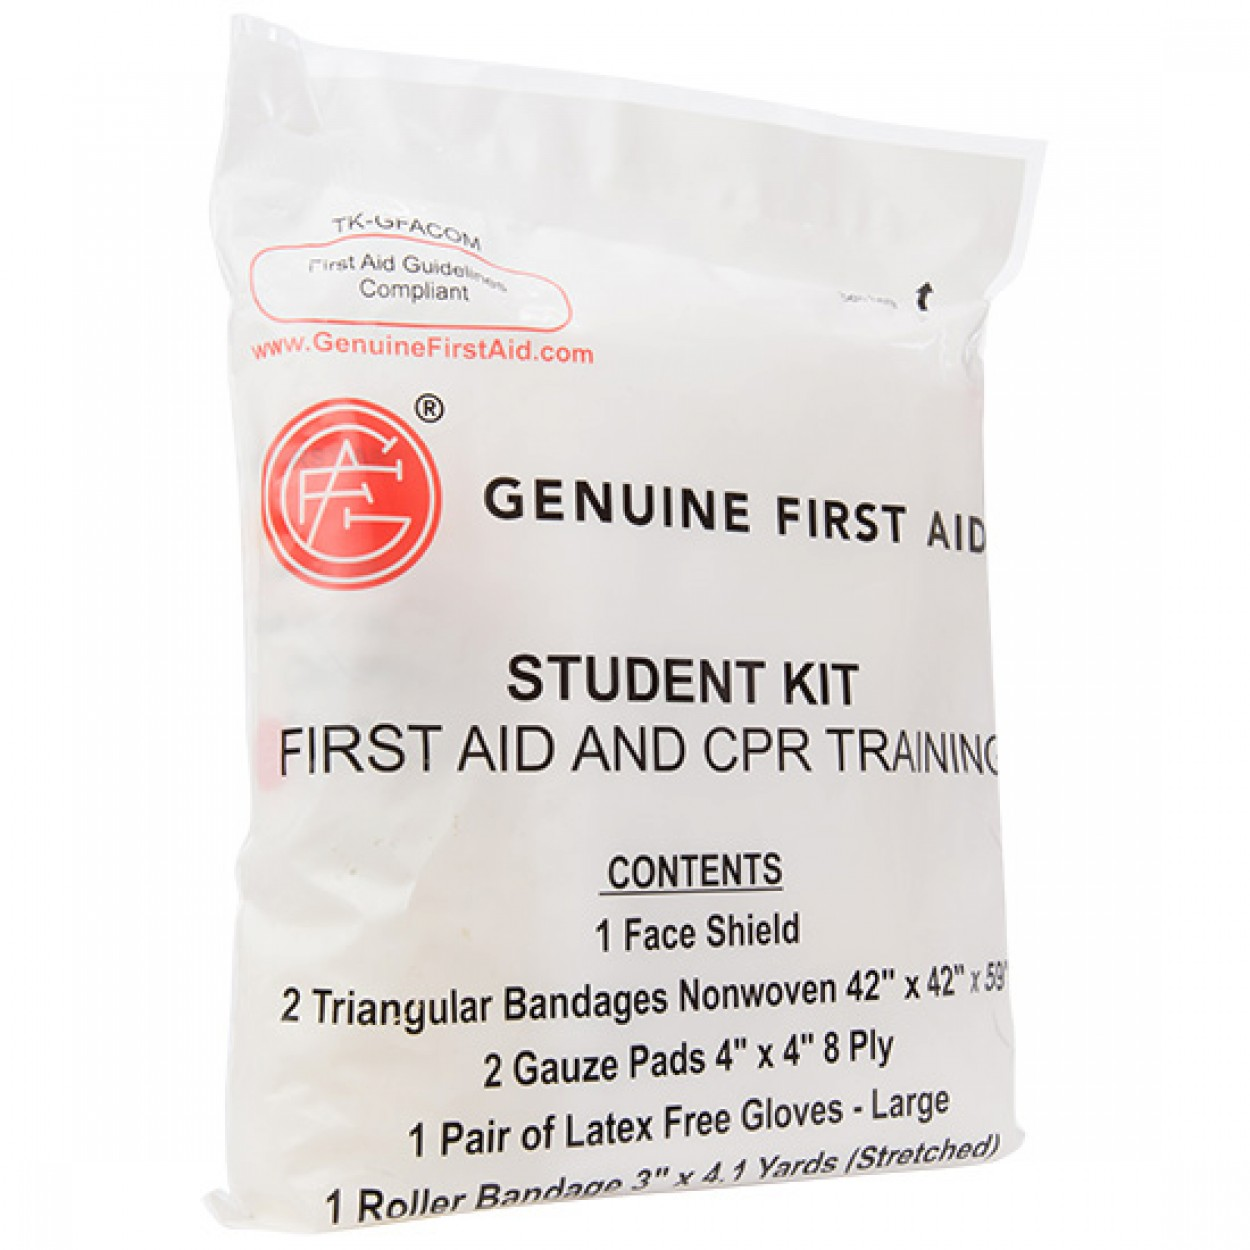 Cpr first aid training kits cpr training kits quick view student cpr training kit xflitez Gallery